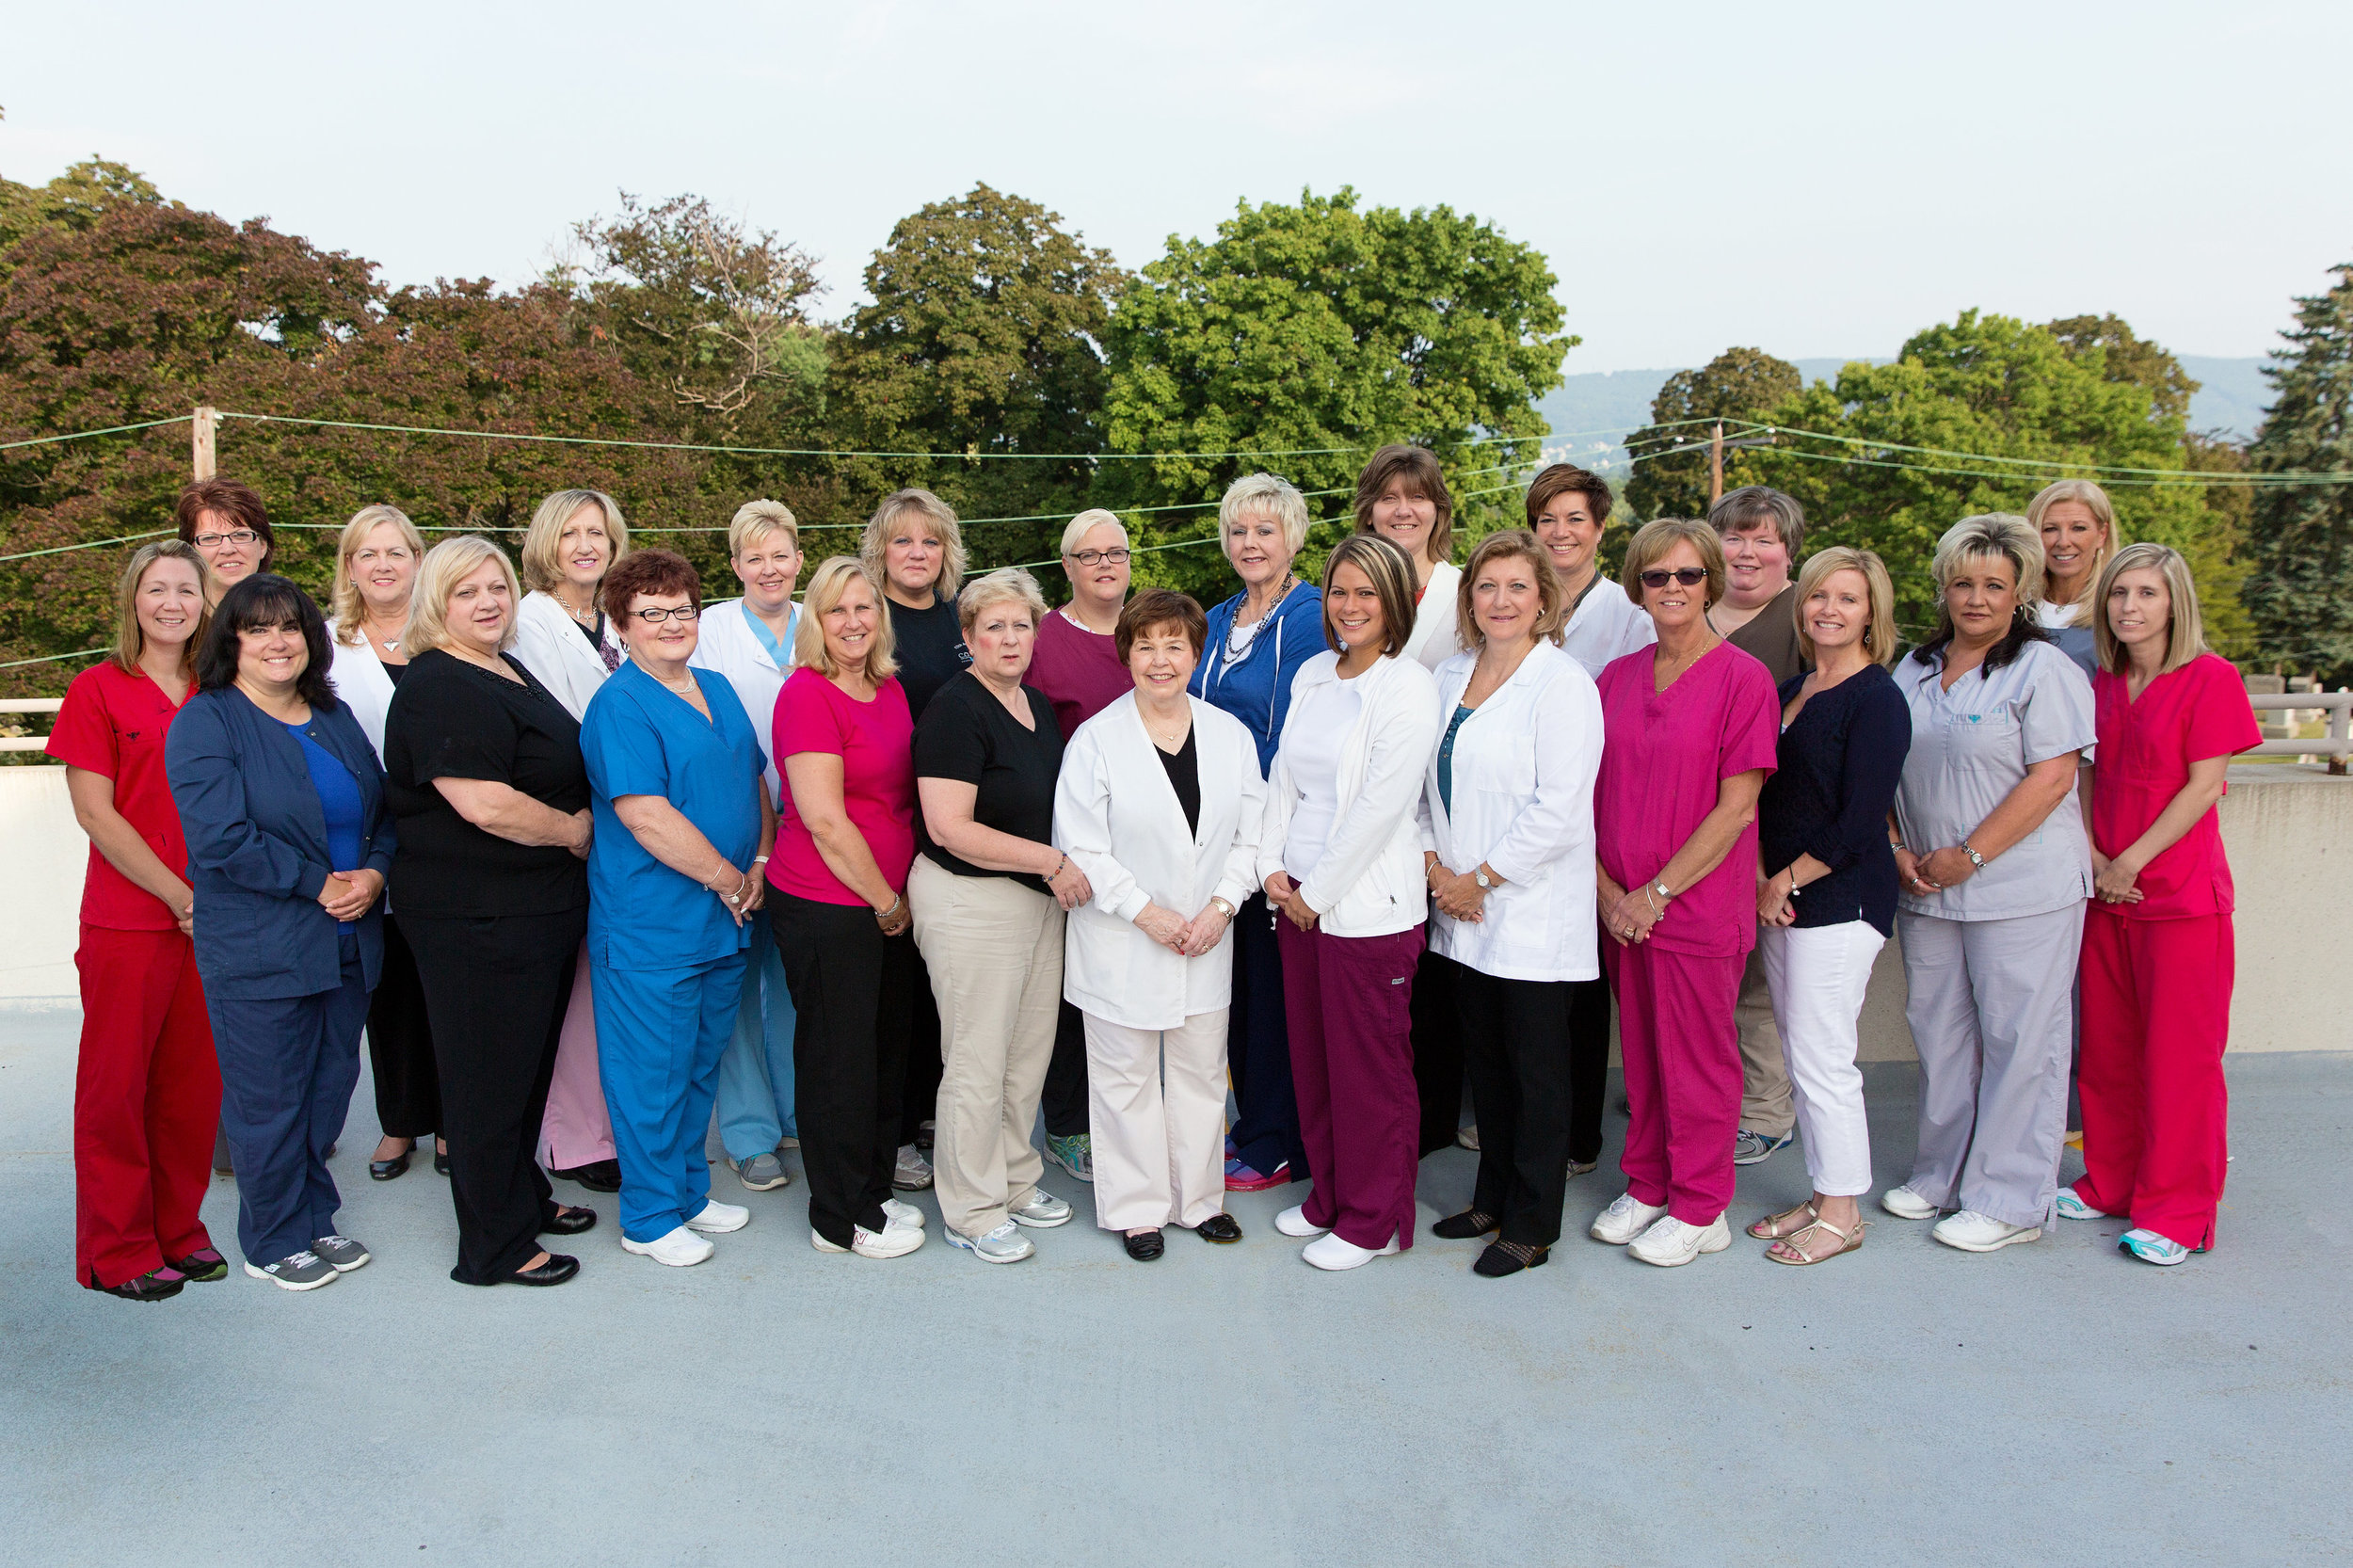 Row One (left to right):  Kelly Brek,  Henrietta Whipple, Theresa Moses,  Jane Gierszal,  Ruth Bierbach,  Betsy Vancosky,  Nancy Parker,  Amanda Brooks,  Diane Mamary,  Denise Tomko,  Renee Conahan, Jennifer Fedor,  April Cipriani   Row Two (left to right):  Carolyn Brennan,  Mary Mcguigan,  Marlene Zekas,  Darlene Orlandine, Yvonne Lamarca, Tamara Walker,  Lisa Yacko,  Patricia Klus,  Deborah Mack, Christine Staub,  Jamie Cosgrove   Absent:  Jennifer Brizgint,  Suzanne Chase,  Patricia Kopec